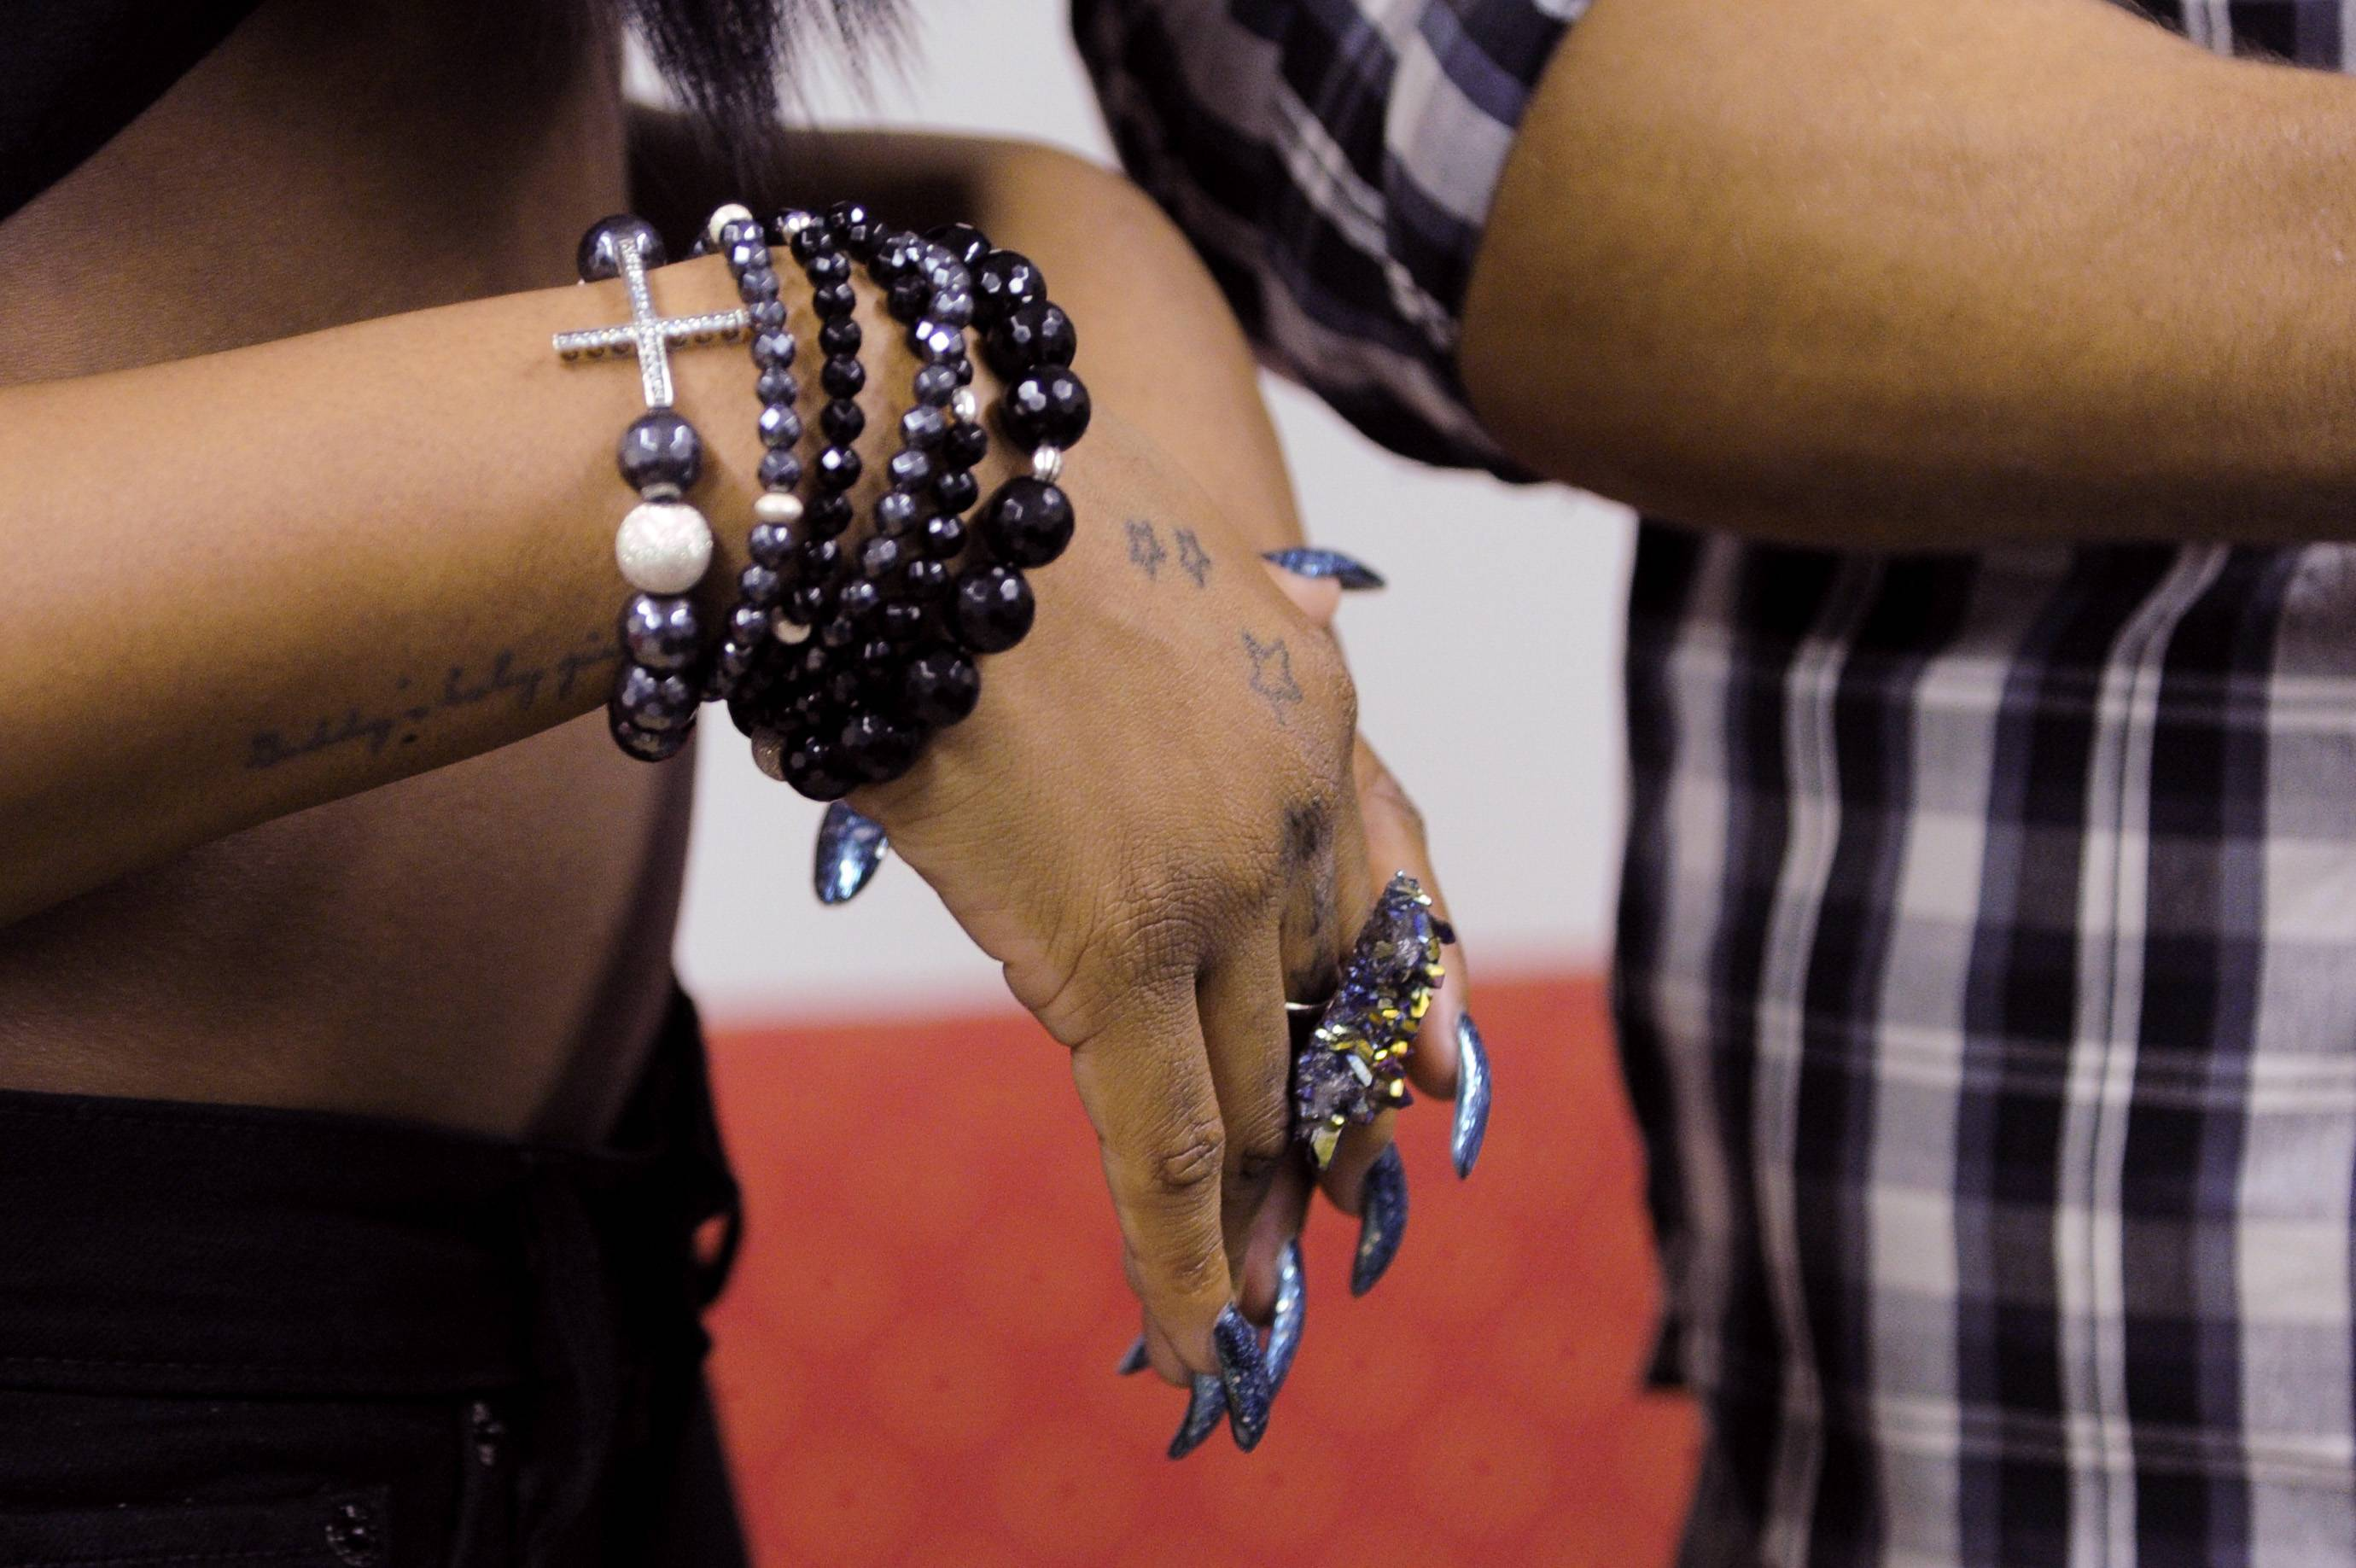 Check That Out - Dawn Richard in the green room at 106 & Park, January 05, 2012.(Photo: John Ricard/BET)